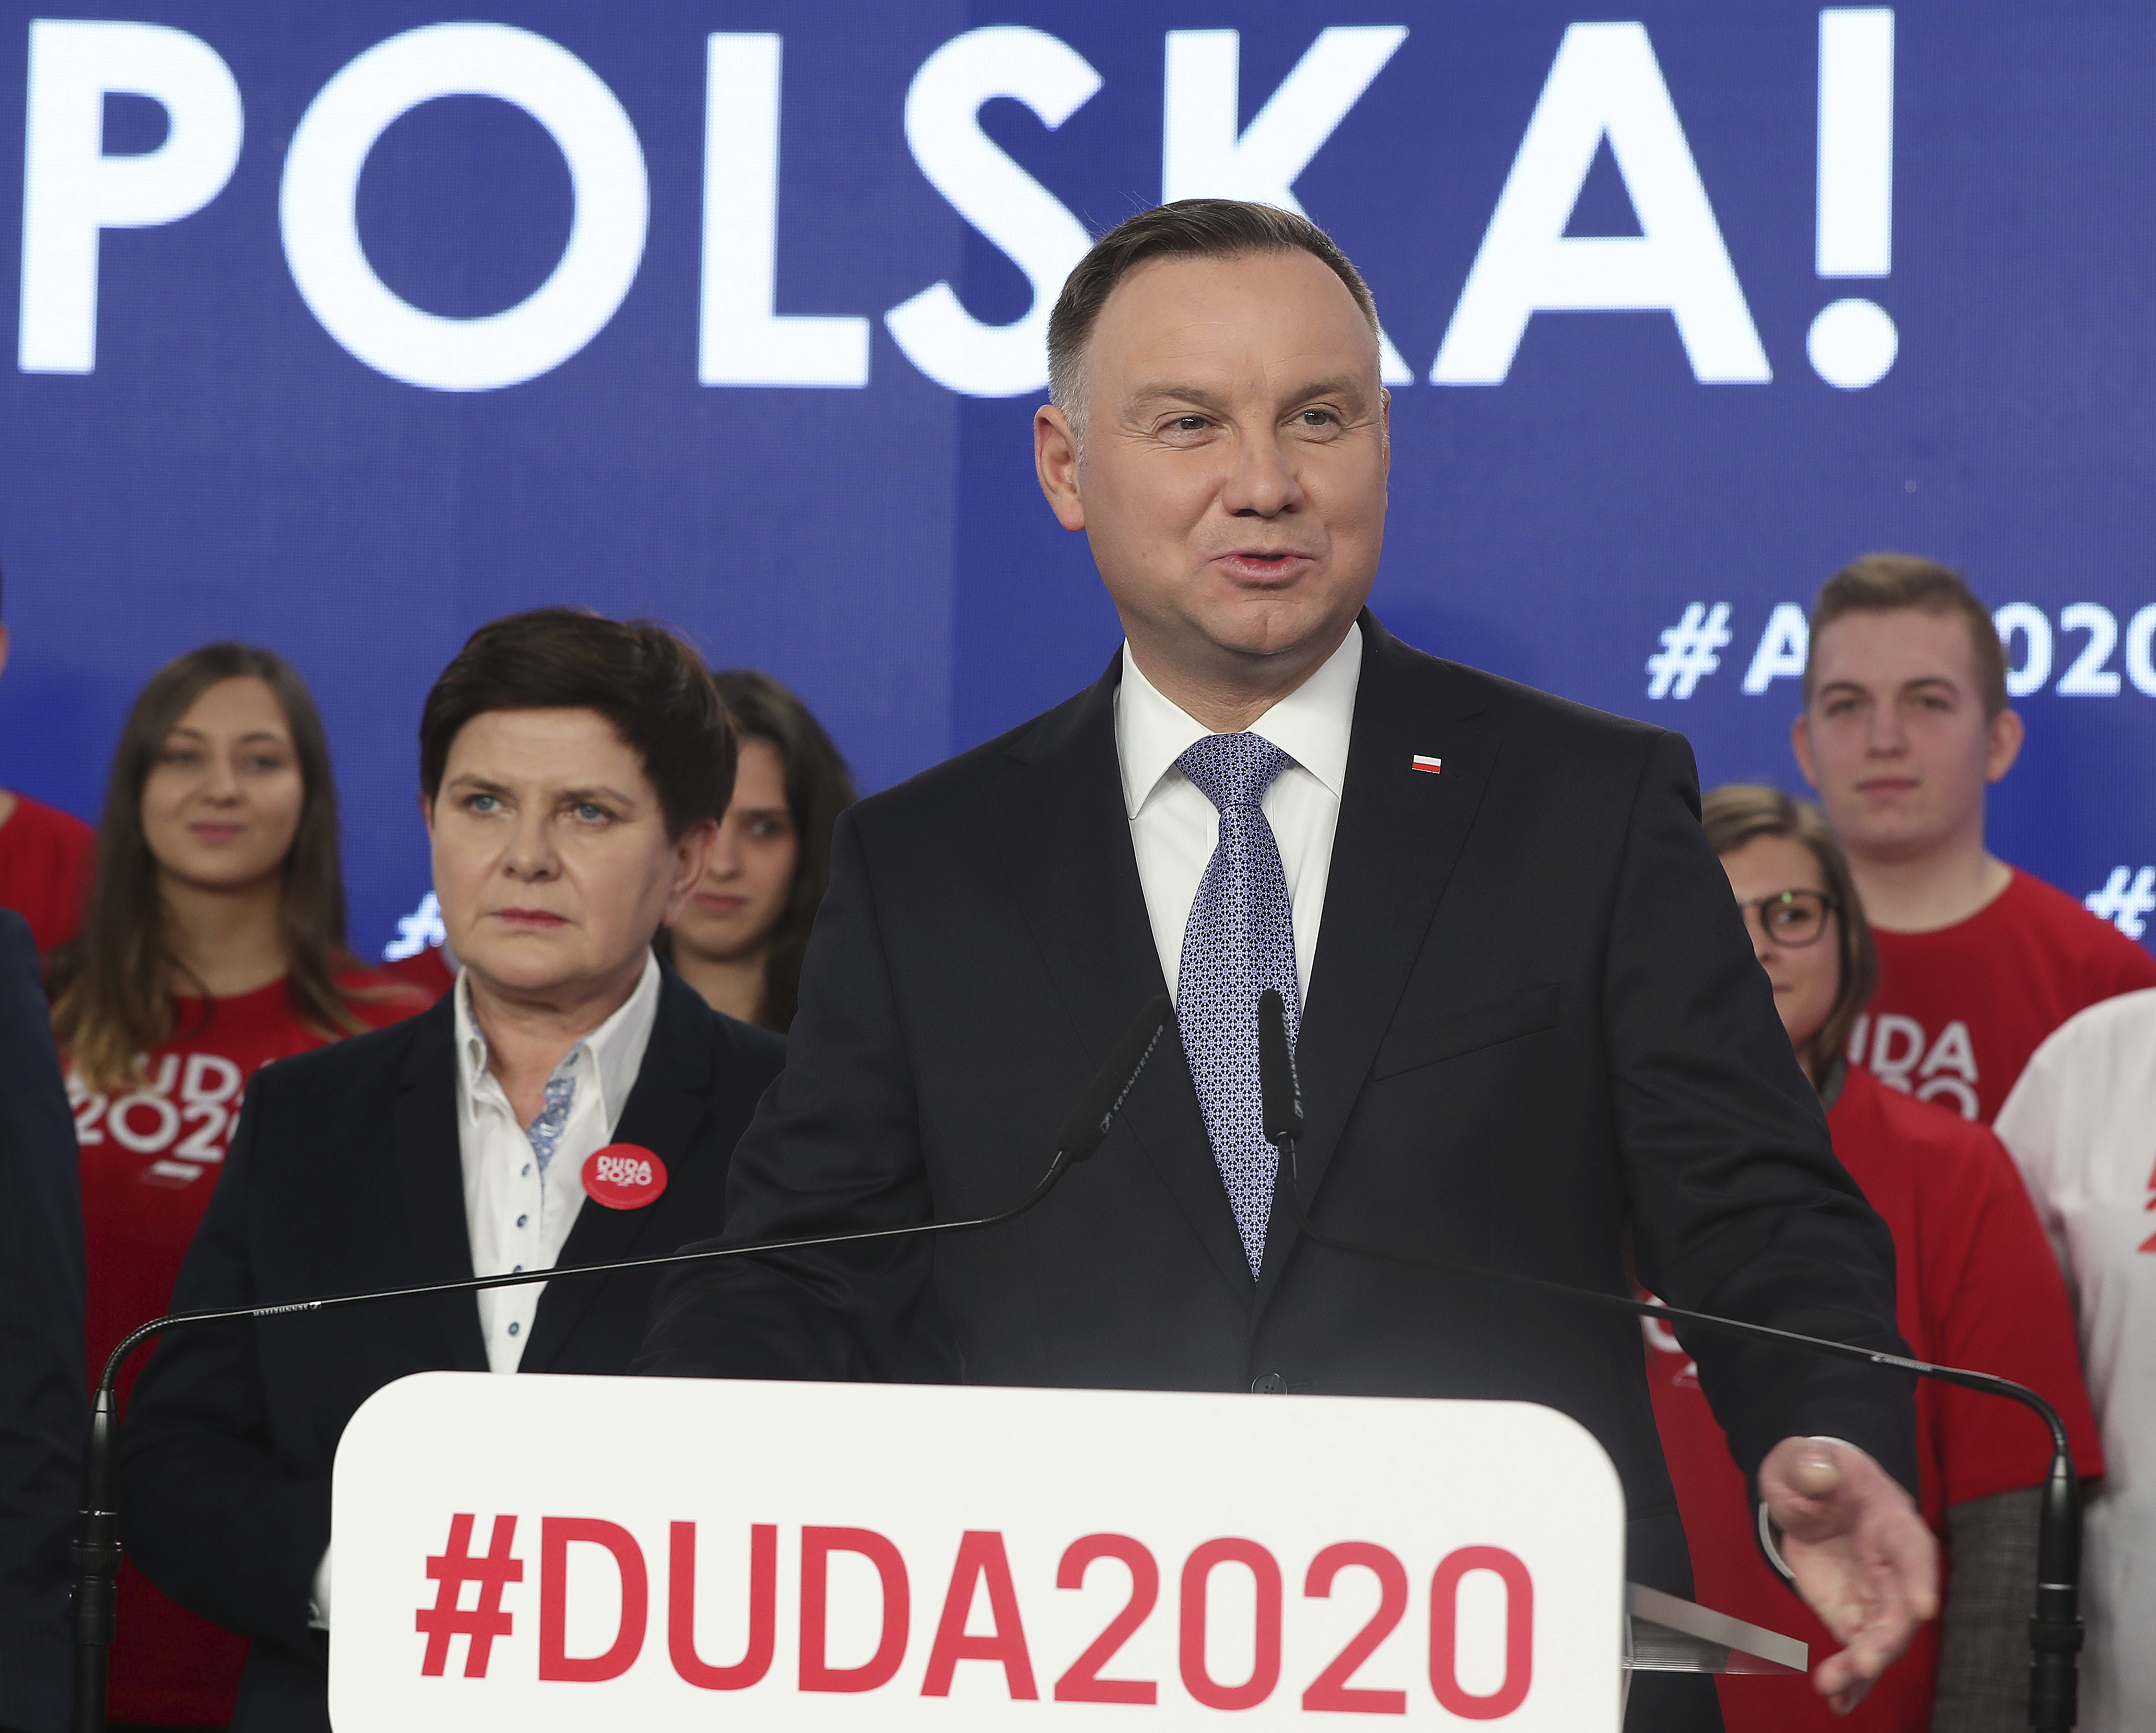 Poland's President Andrzej Duda campaigns for his re-election in Warsaw, Poland on February 20, 2020.